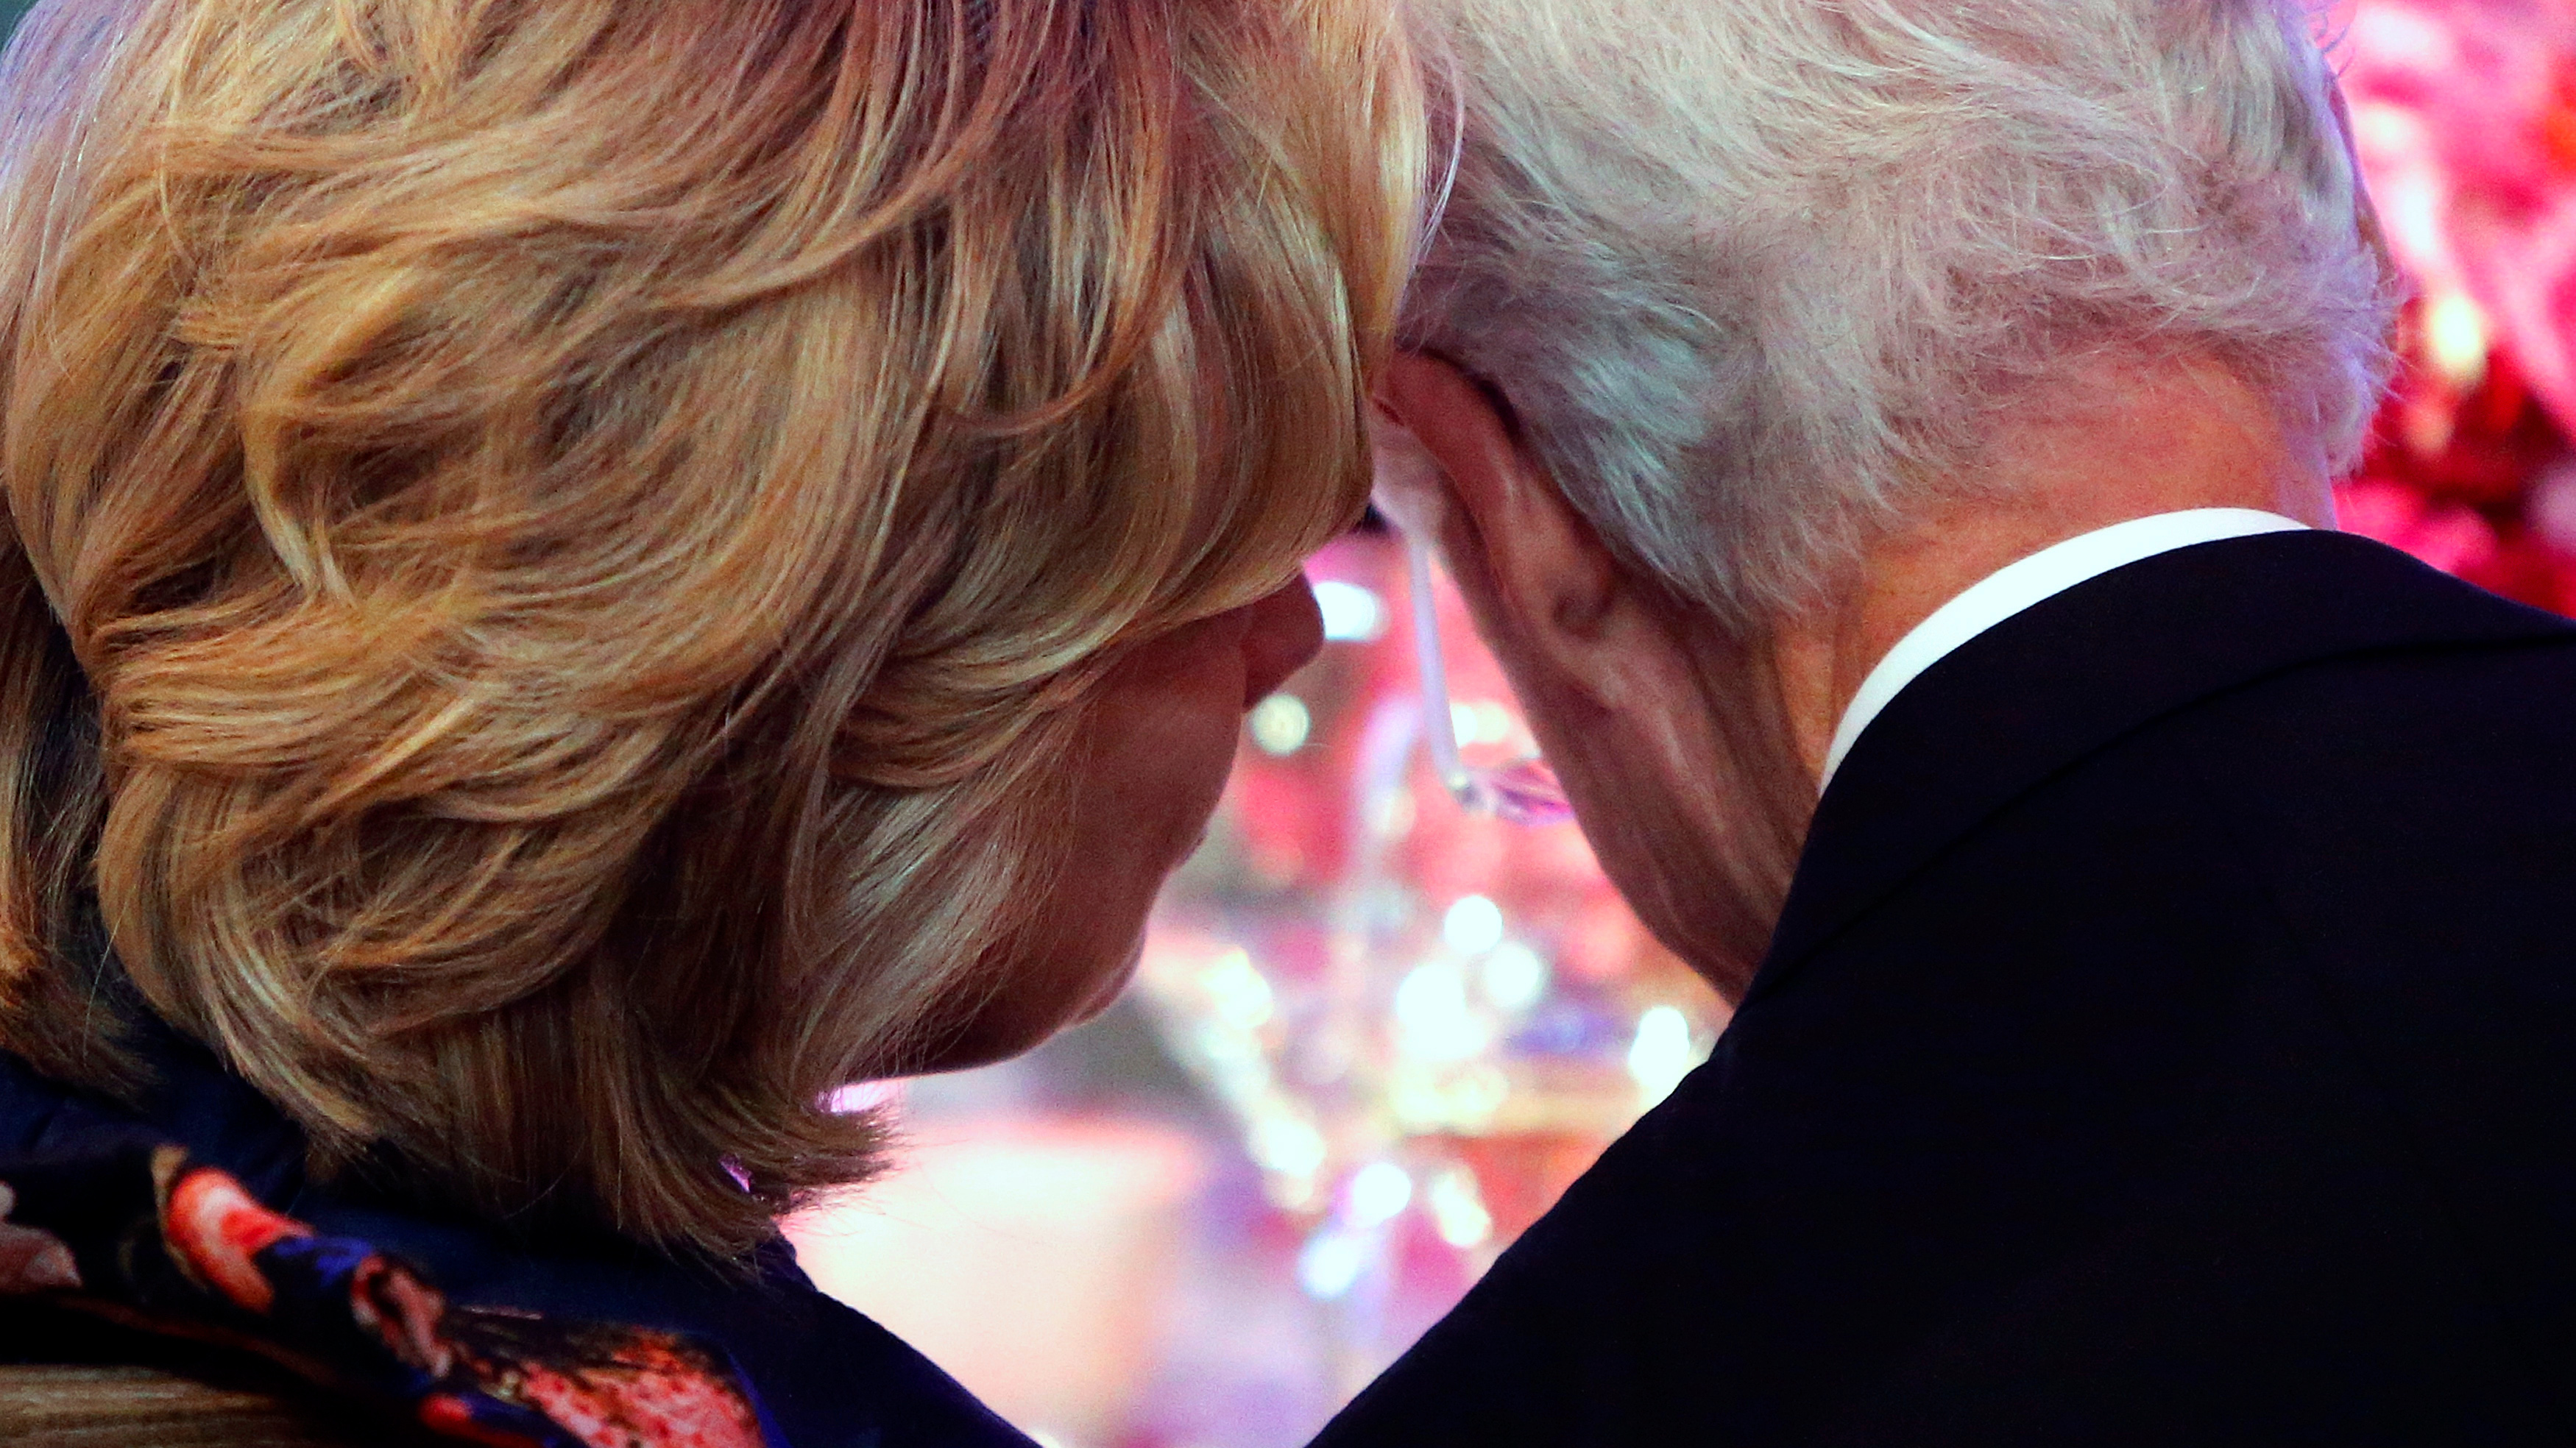 Former Secretary of State Hillary Clinton (L) and her husband, former U.S. President Bill Clinton talk at a dinner in honor of Presidential Medal of Freedom awardees at the Smithsonian National Museum of American History in Washington, November 20, 2013.